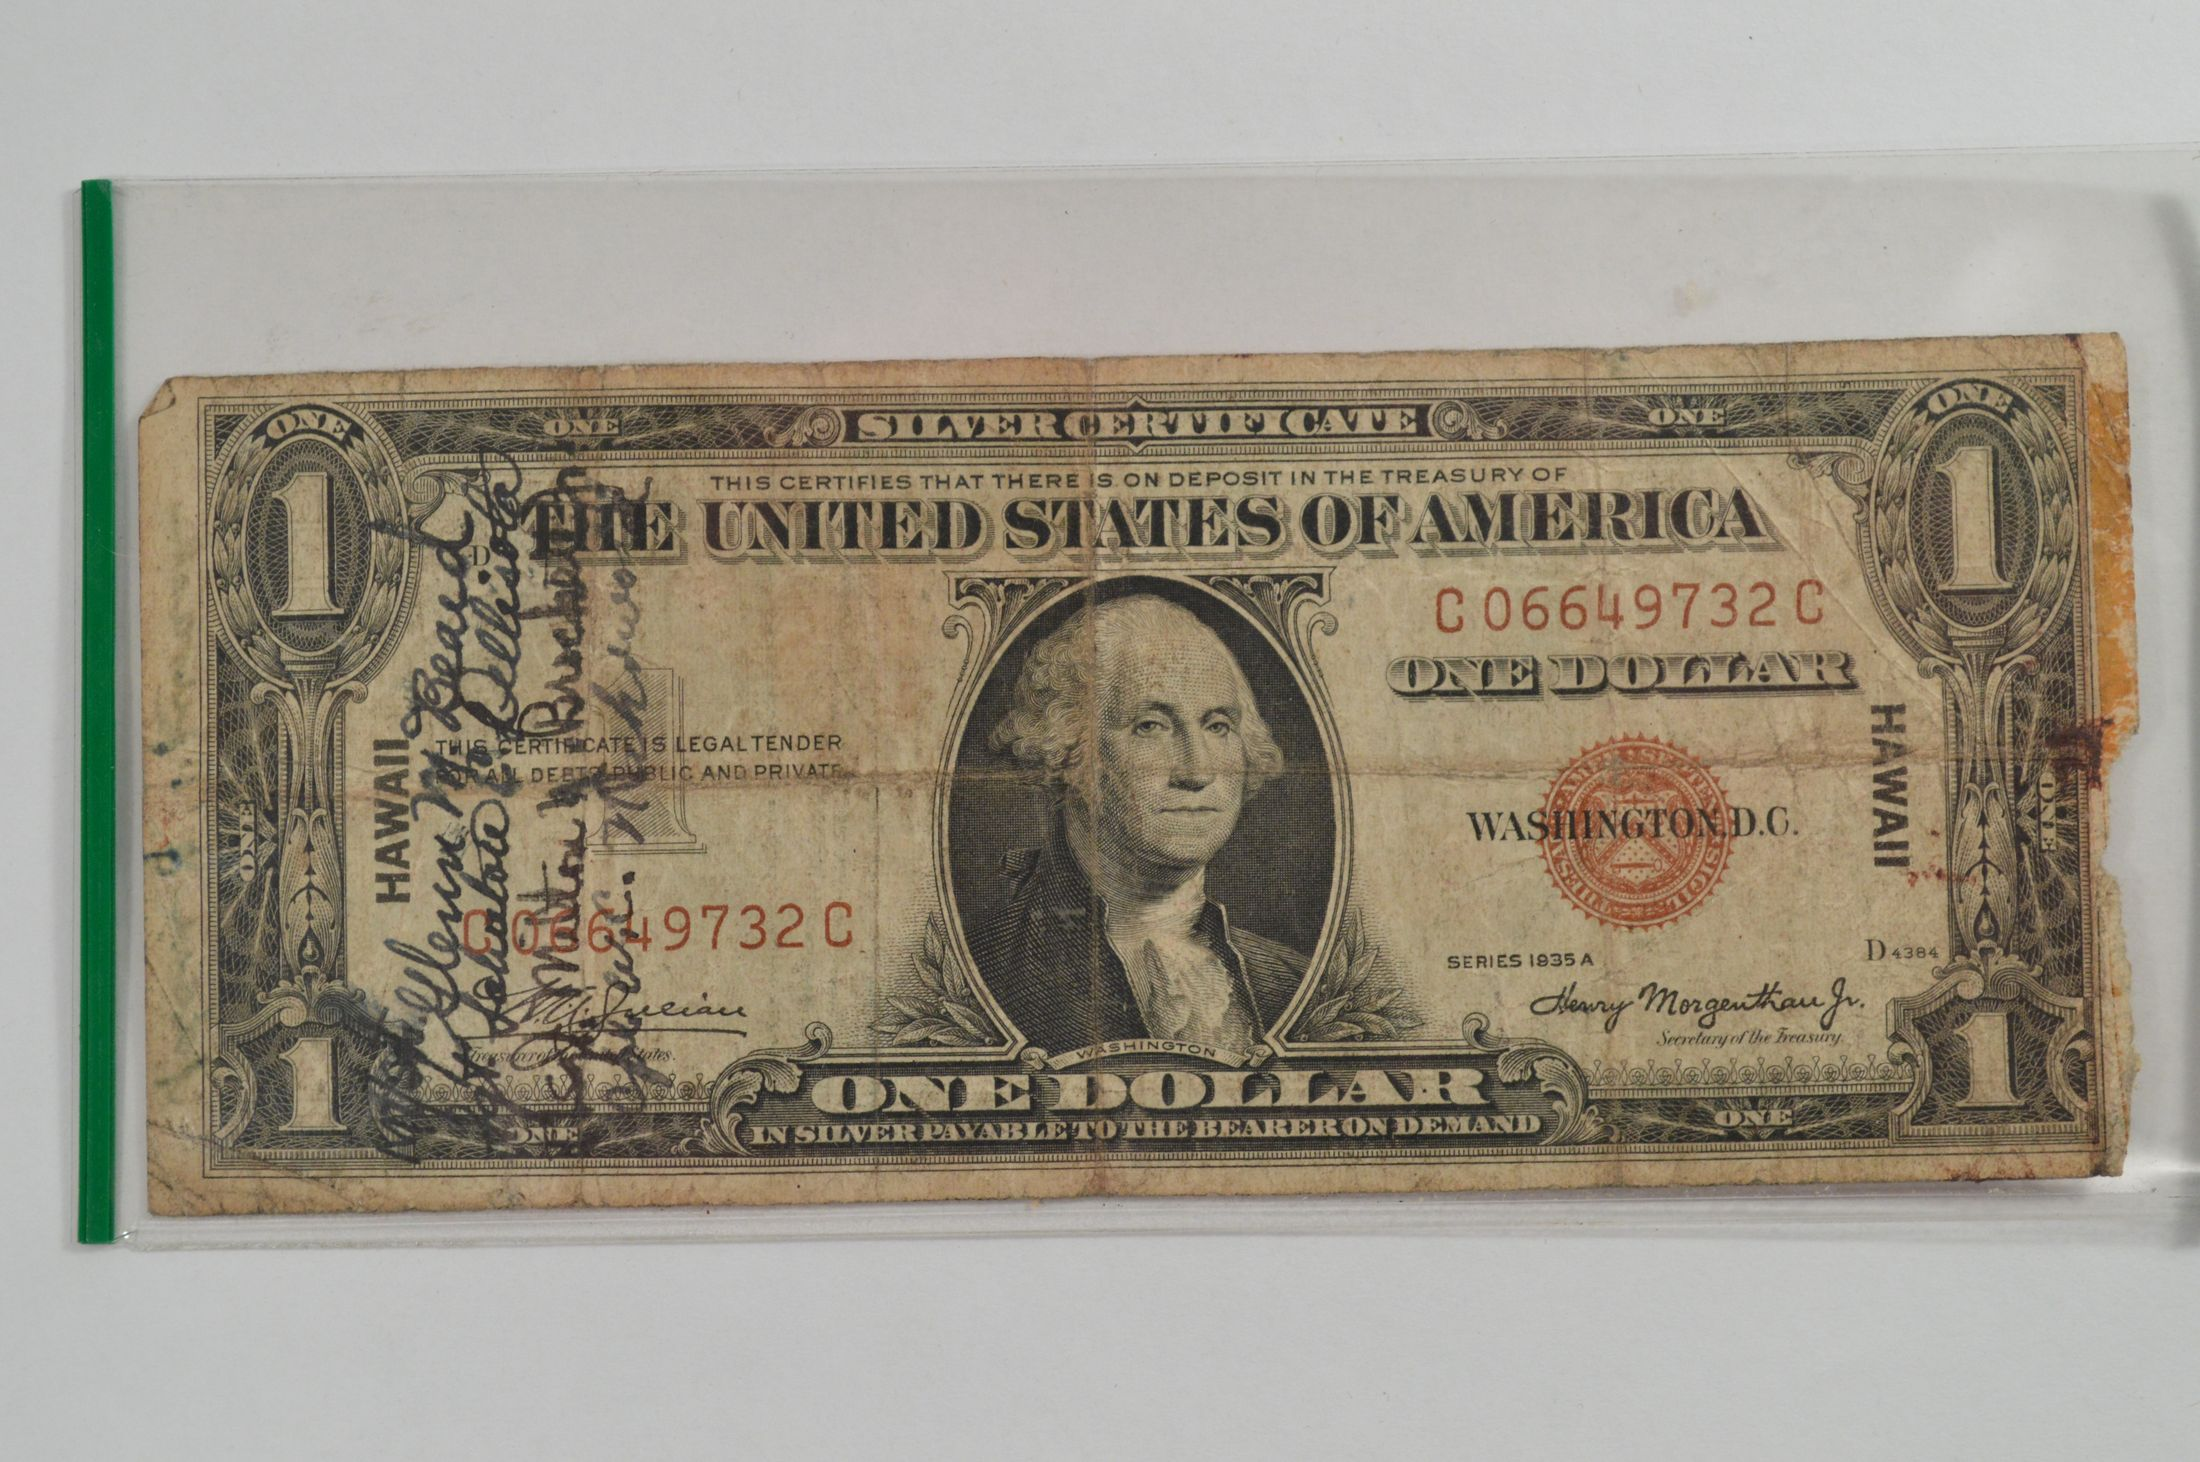 Series 1935a 1 Dollar Hawaii Silver Certificate With Signatures Of